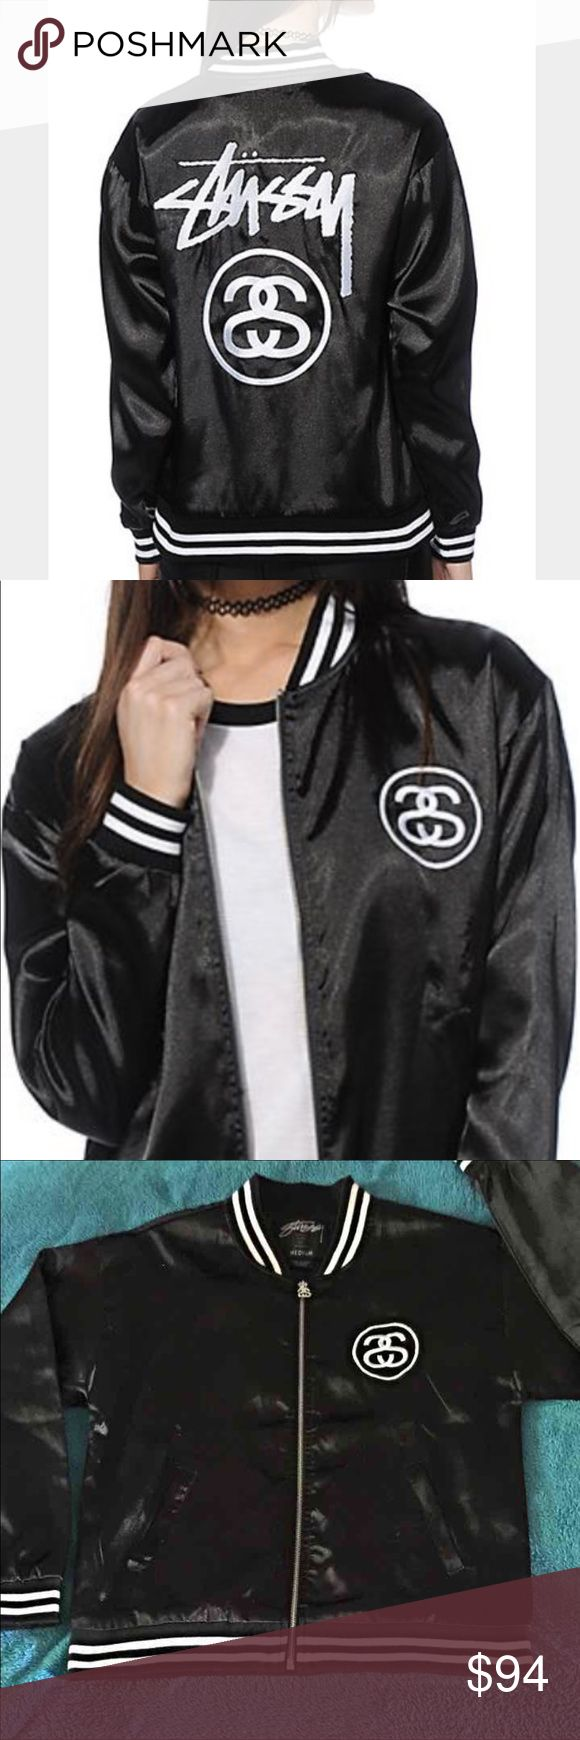 %100 Authentic Black STUSSY Bomber Jacket! FIRM Like New Condition worn 2Xs! Mild piling on sleeves have been removed. Black satin and white baseball trim! Lite weight for summer nights! Size M women's 8-10/ Men's 28-32. This style has sold out and hard to find! Letting all valuable things go to help with financial crisis! Thank you for your purchases! Nothing is taken for granted in my home! Without my buyers, we don't eat, without my buyers, bills get shut off! Thank you while Iam in the…